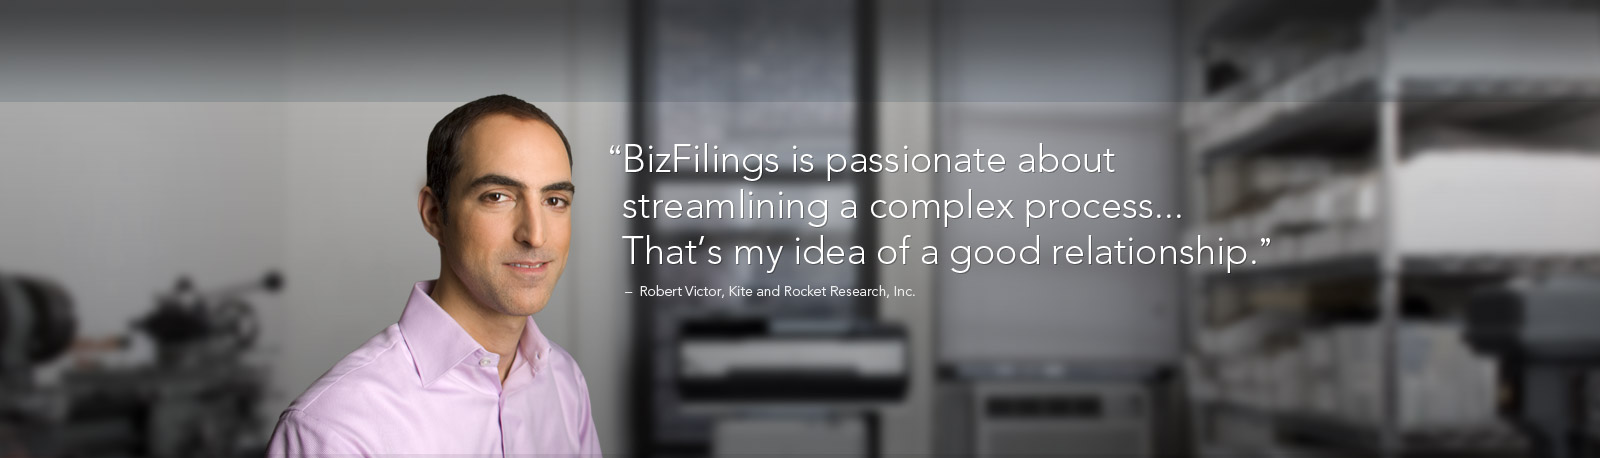 'BizFilings is passionate about streamlining a complex process... That's my idea of a good relationship' - Robert Victor, Kite and Rocket Research, Inc.